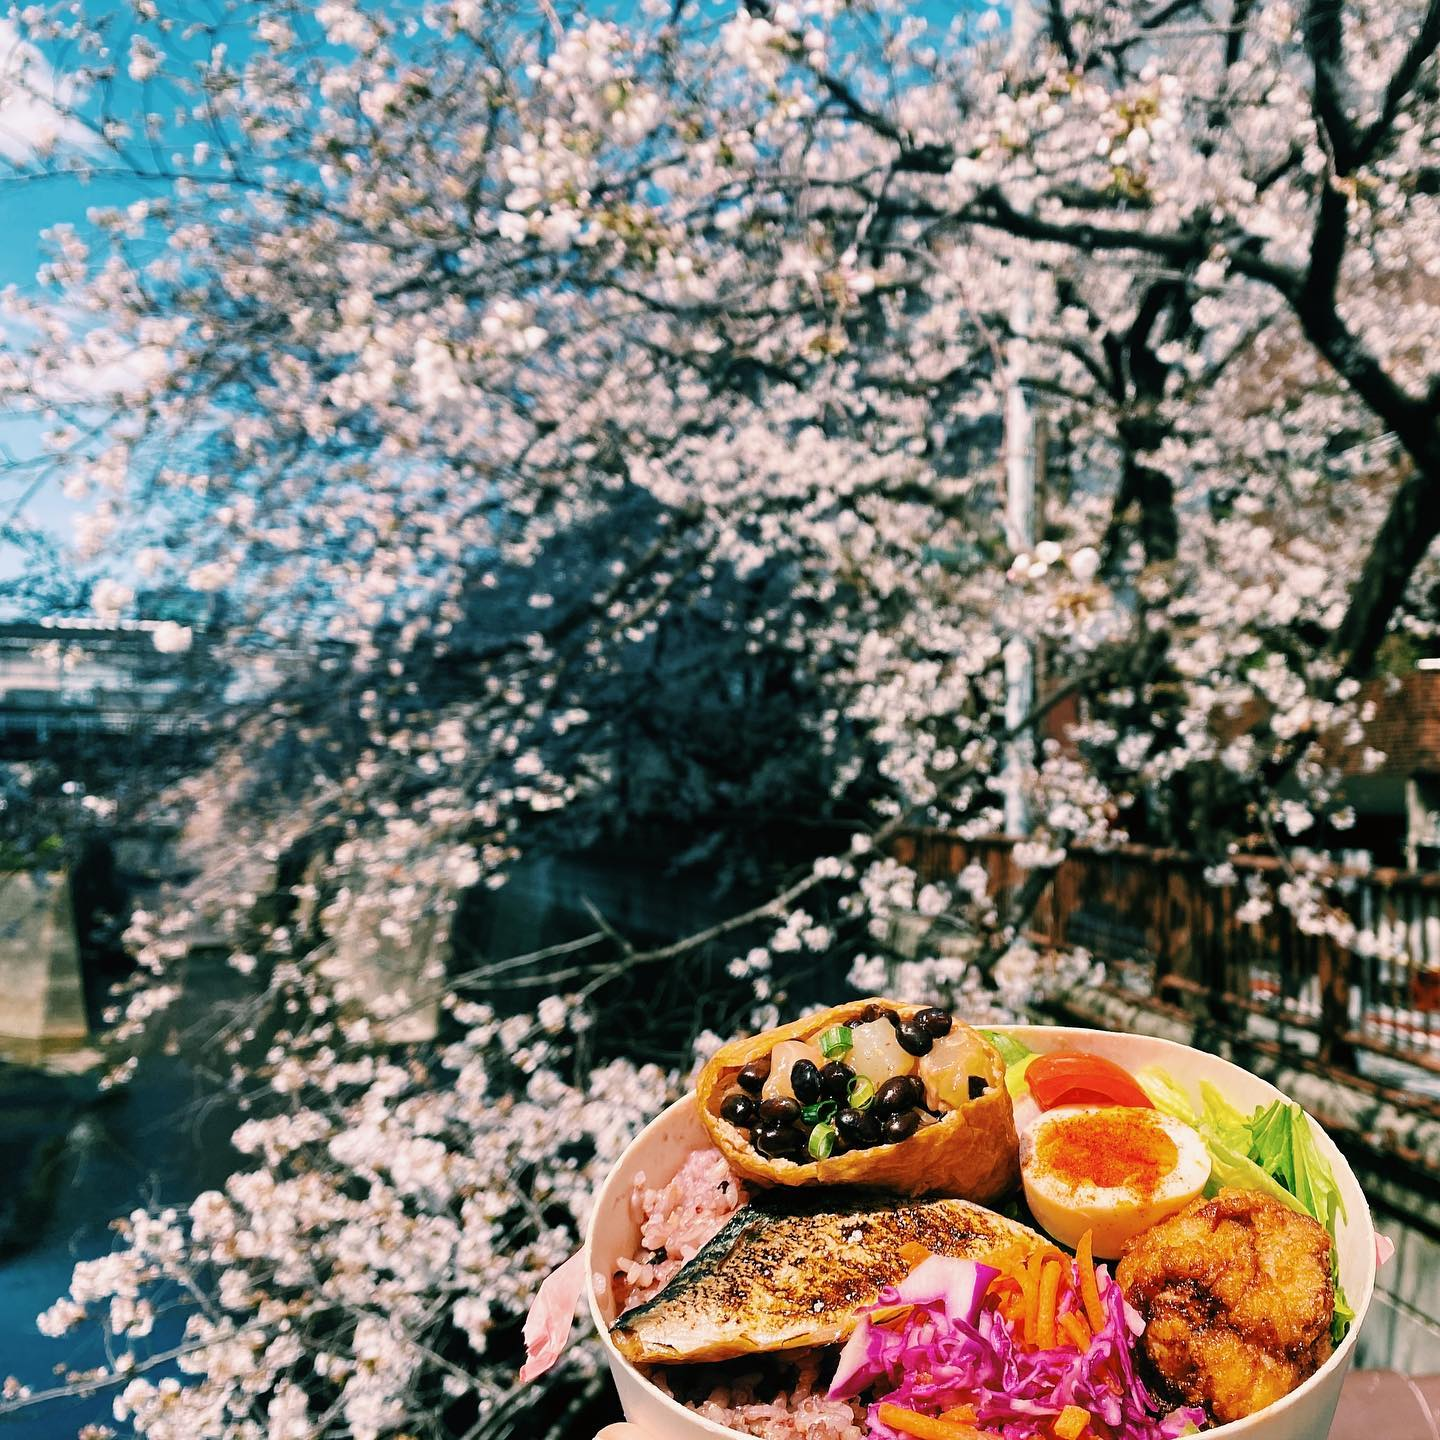 _ Cherry blossom season at the AOI Global Nakameguro office  Beautiful Bento (Japanese packed meal) to accompany our Hanami (flower viewing)  #weeklyinspiration #tokyocherryblossom